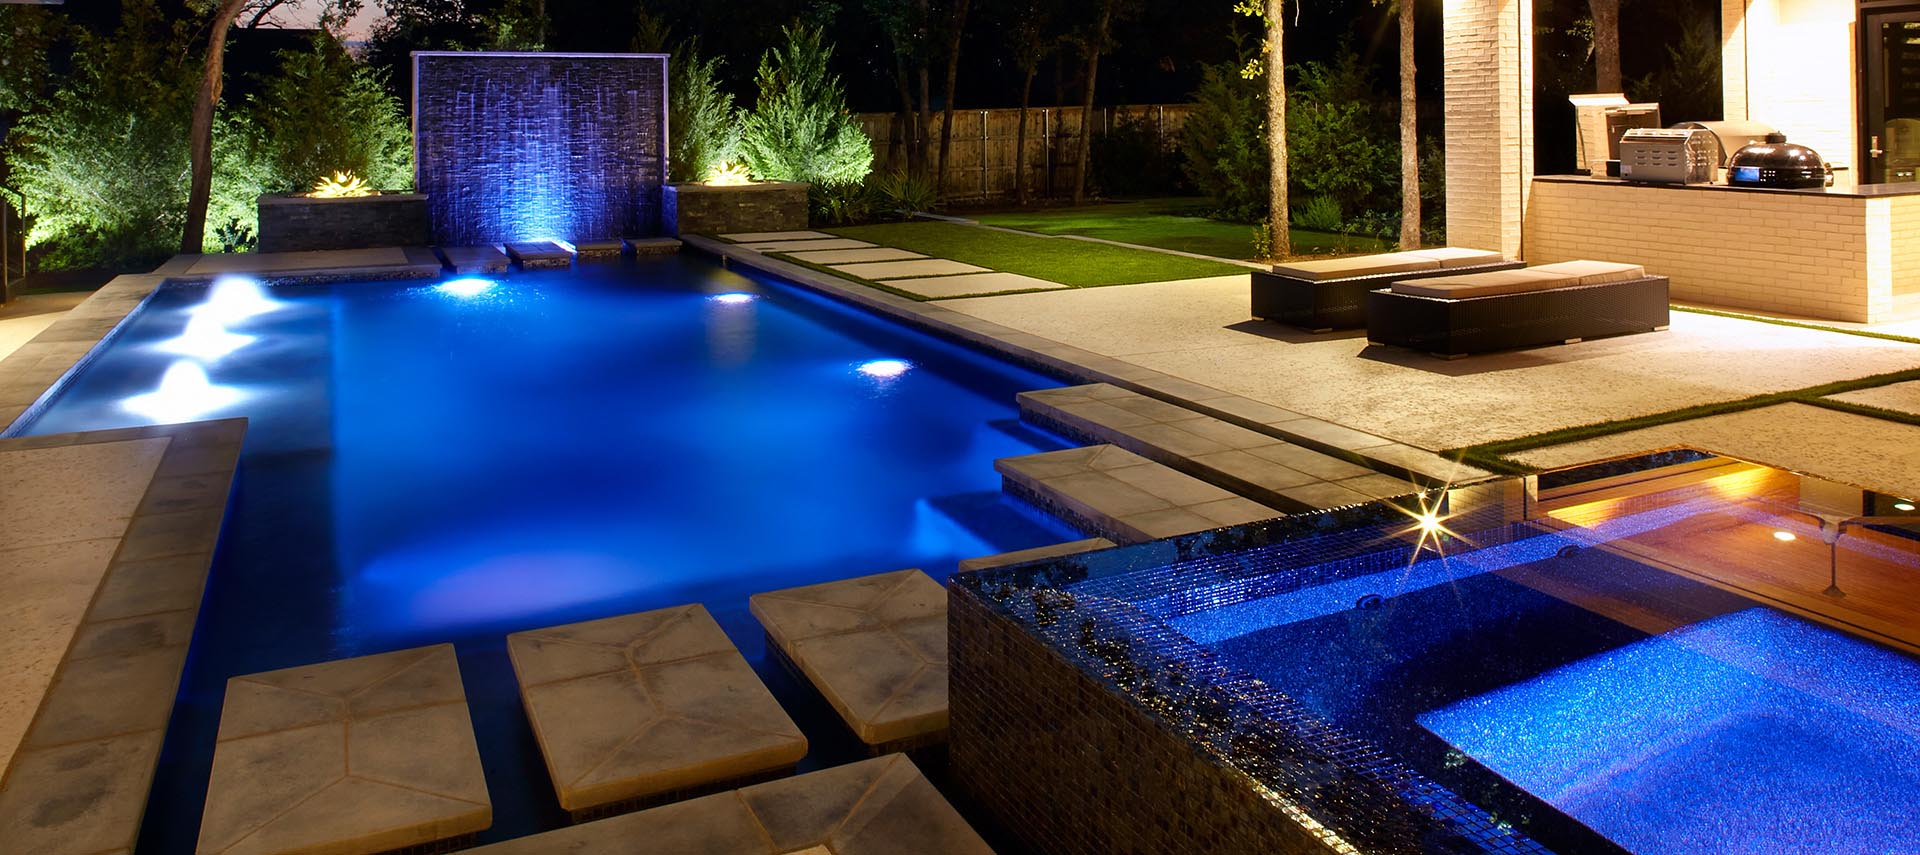 Modern Outdoor Living Entertainment includes kitchen pool fire pit Spa Residential Landscape Design Build by Original Landscape Concepts